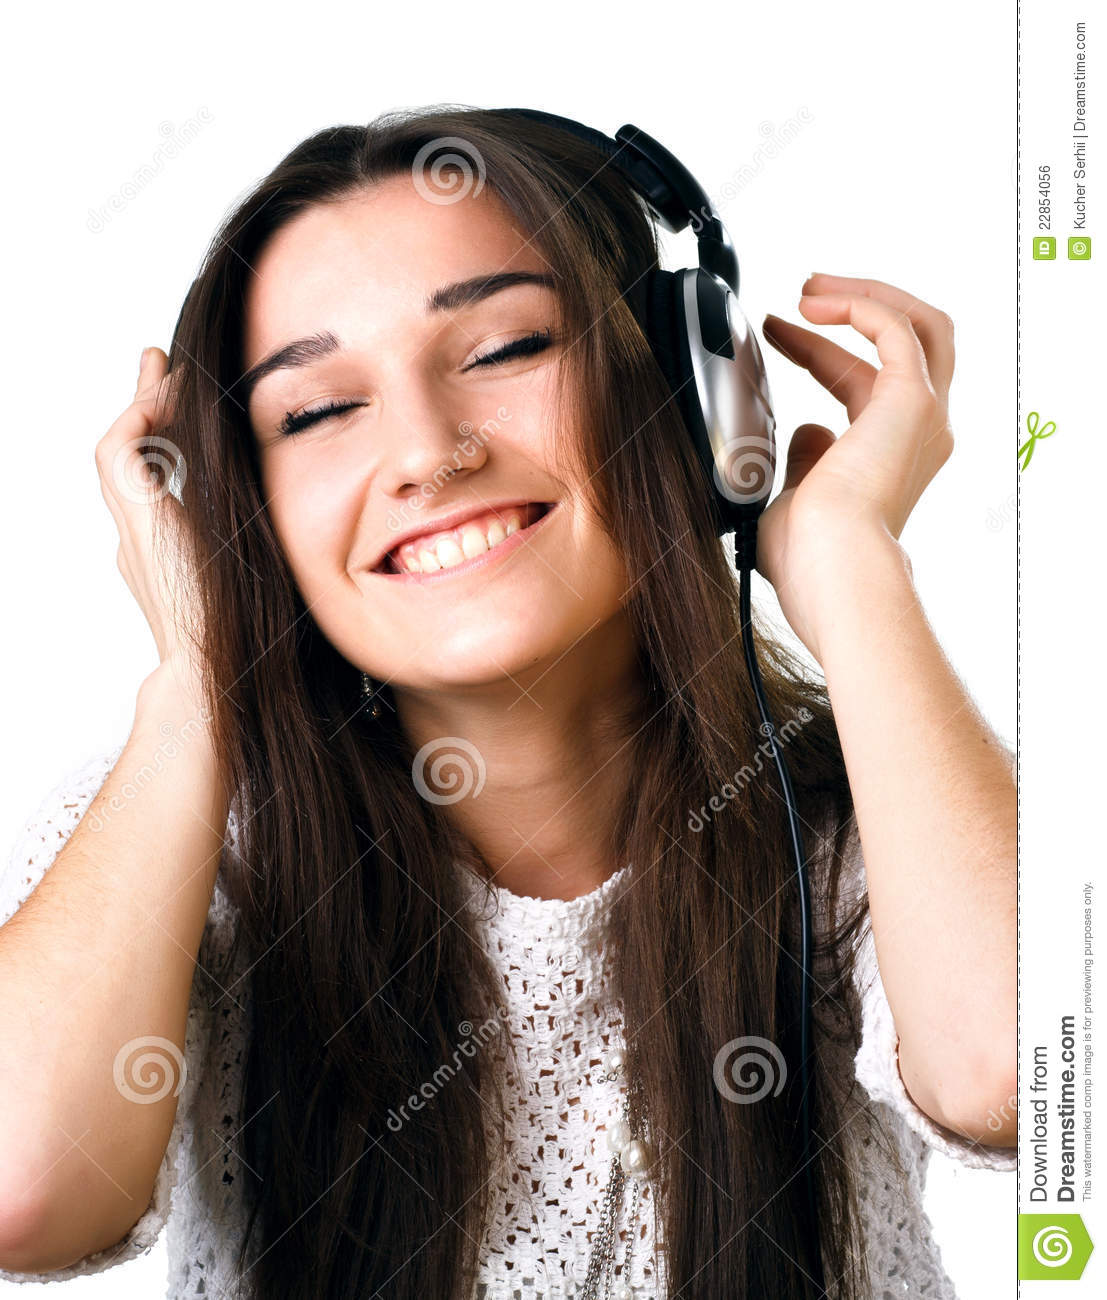 Beautiful Headphones Beautiful Girl In Headphones Royalty Free Stock Image